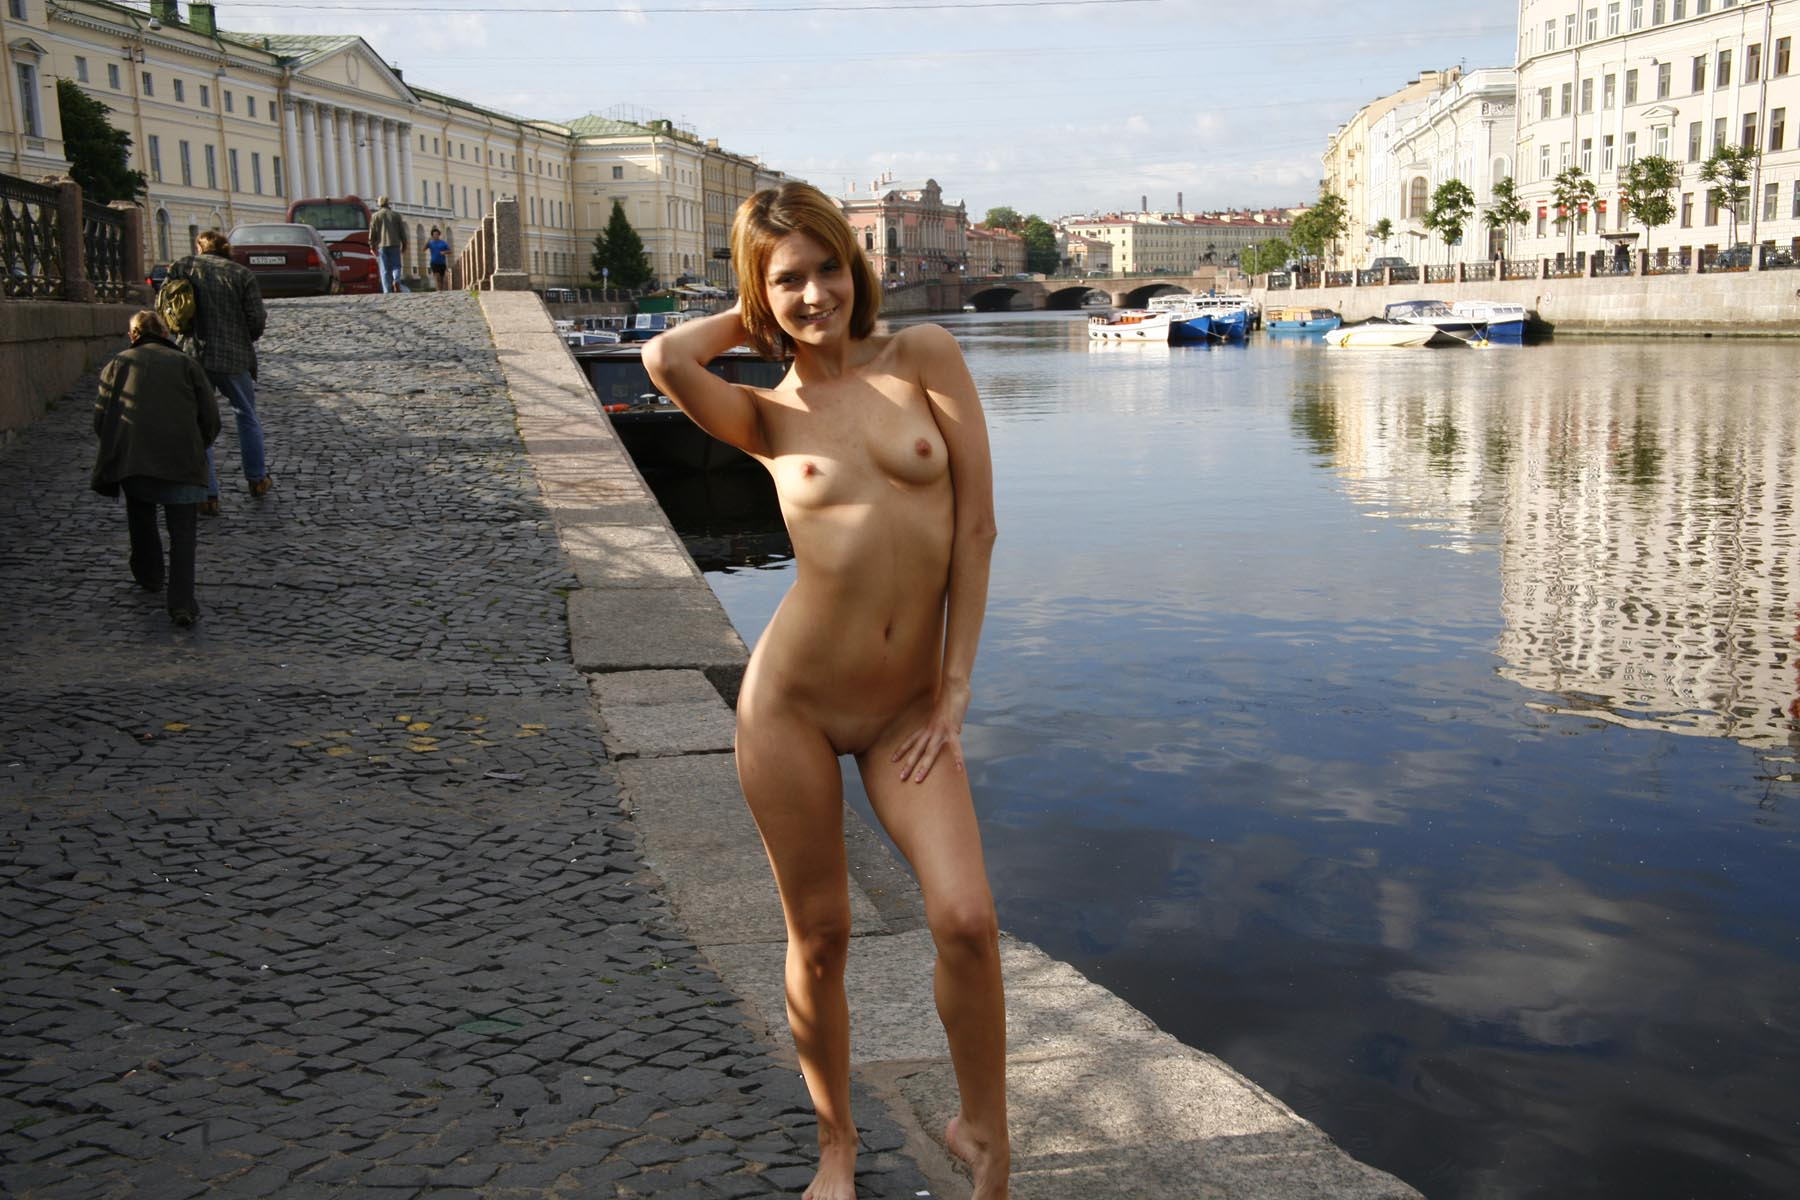 Crazy Russian Girl Exposes Her Naked Body At Pubic -2354